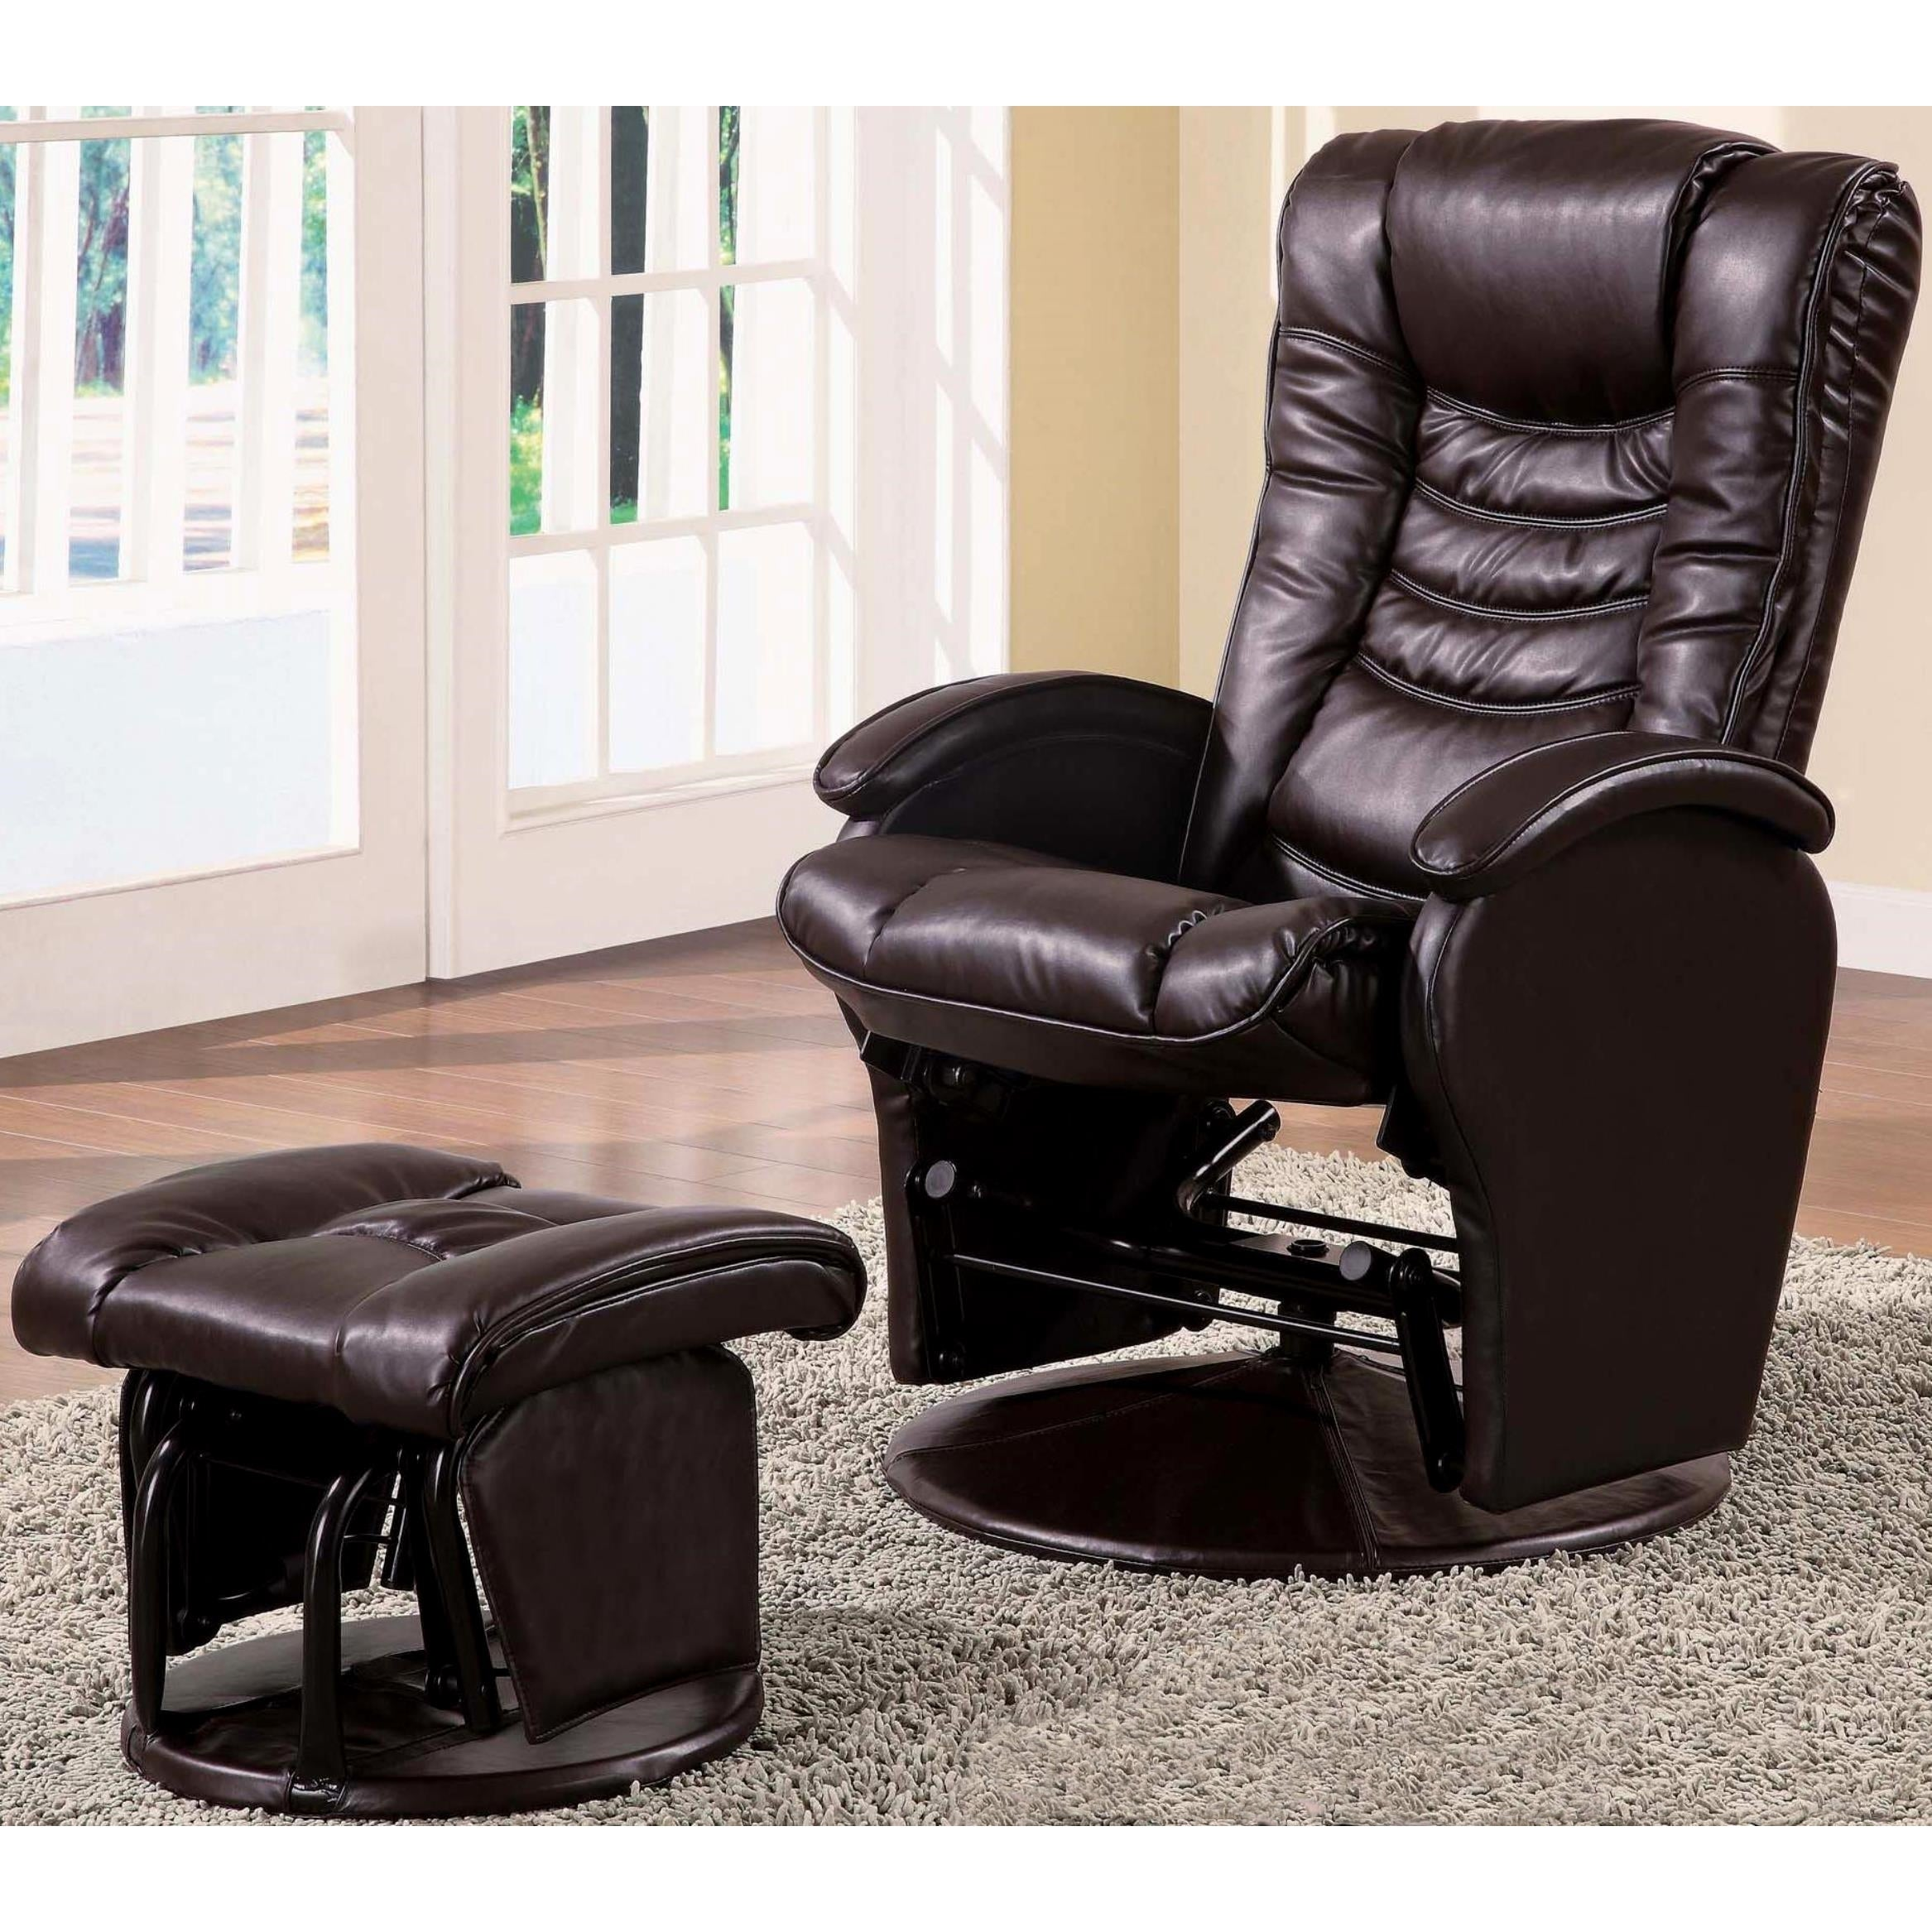 Askella Swivel Glider Recliner Ottoman Set (Brown), Size ...